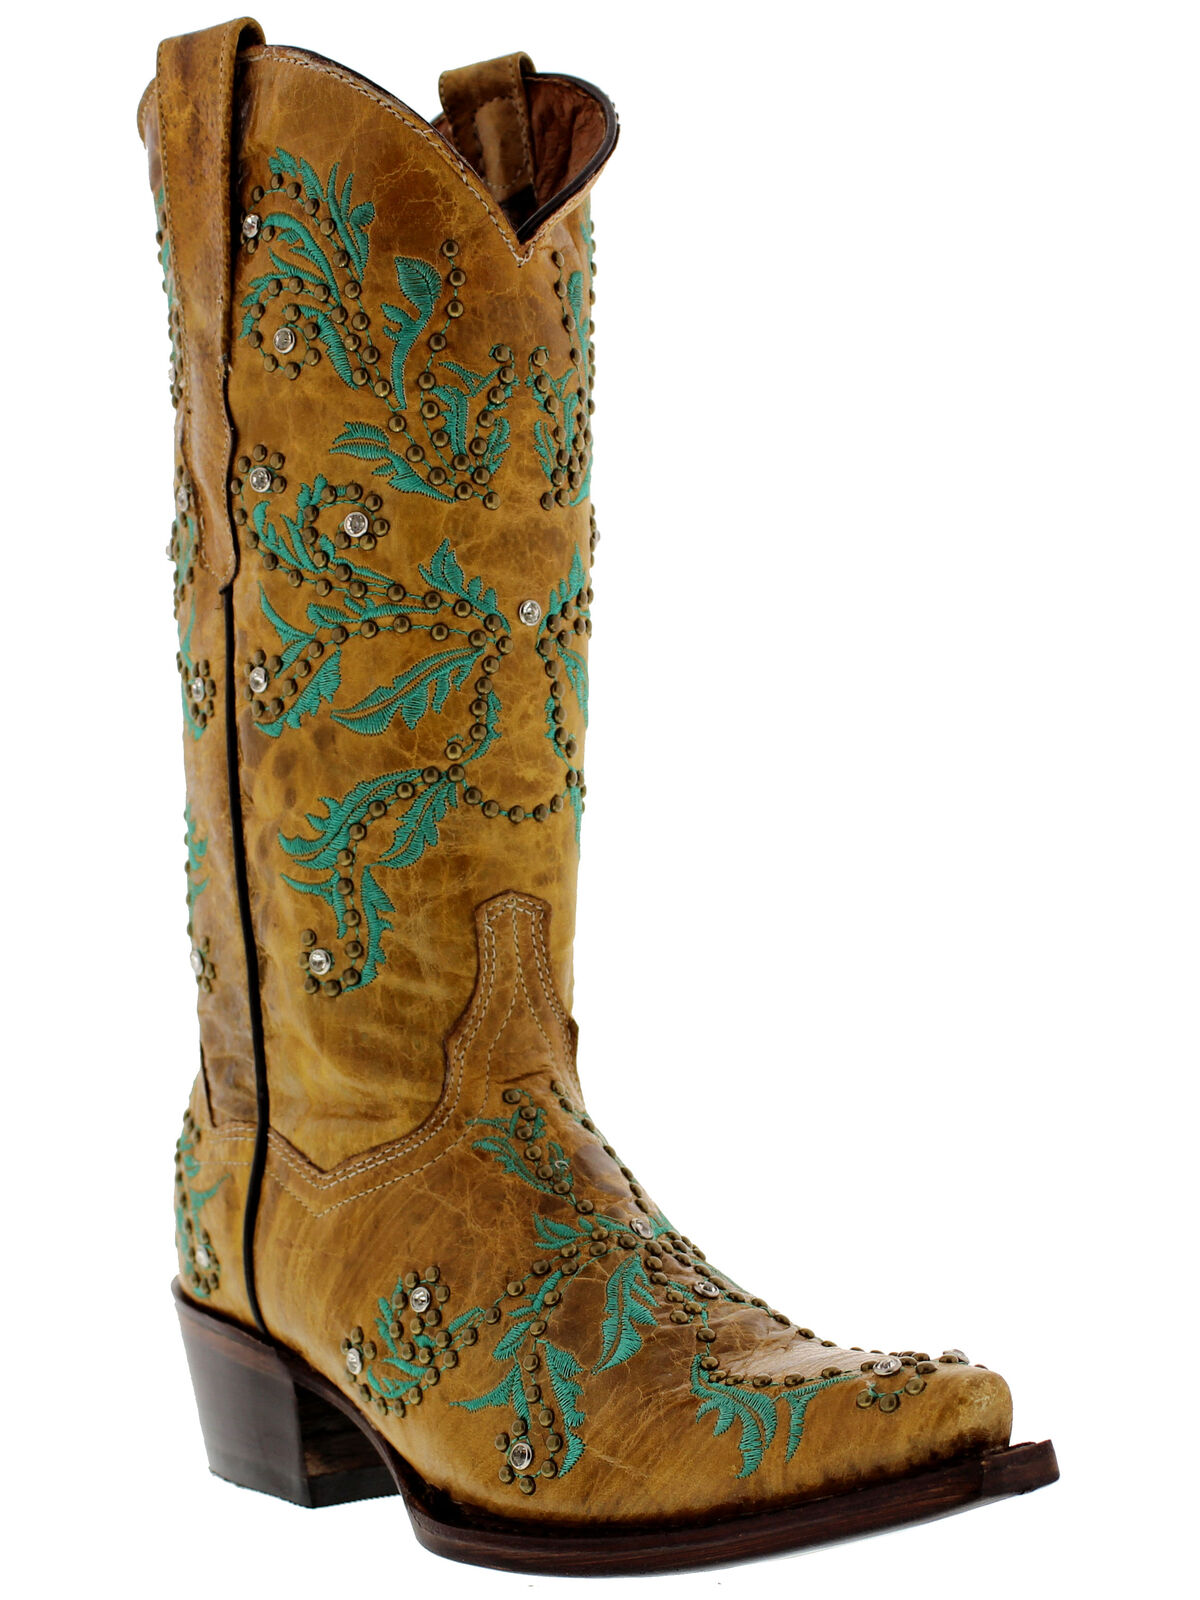 Womens Distressed Sand Leather Studded Fashion Cowgirl Boots Snip Toe